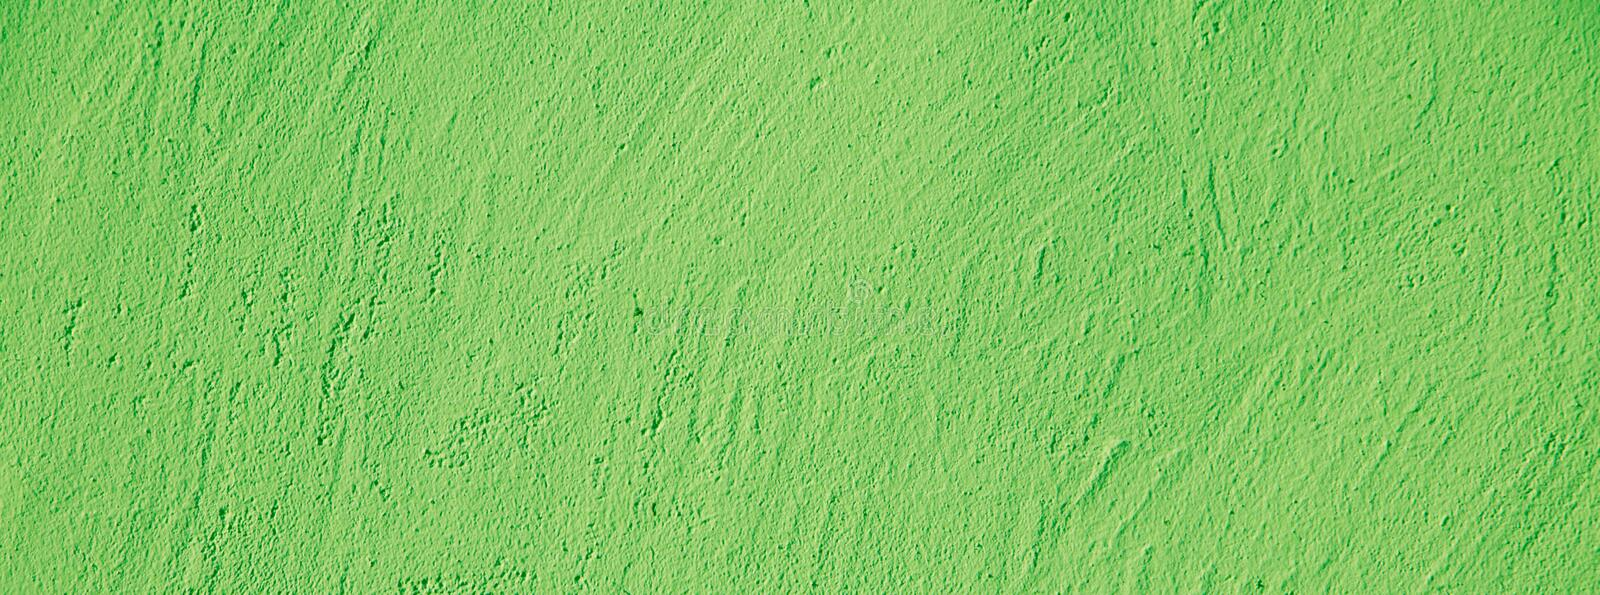 Abstract Grunge Light Green Plaster Wall Texture royalty free stock photos